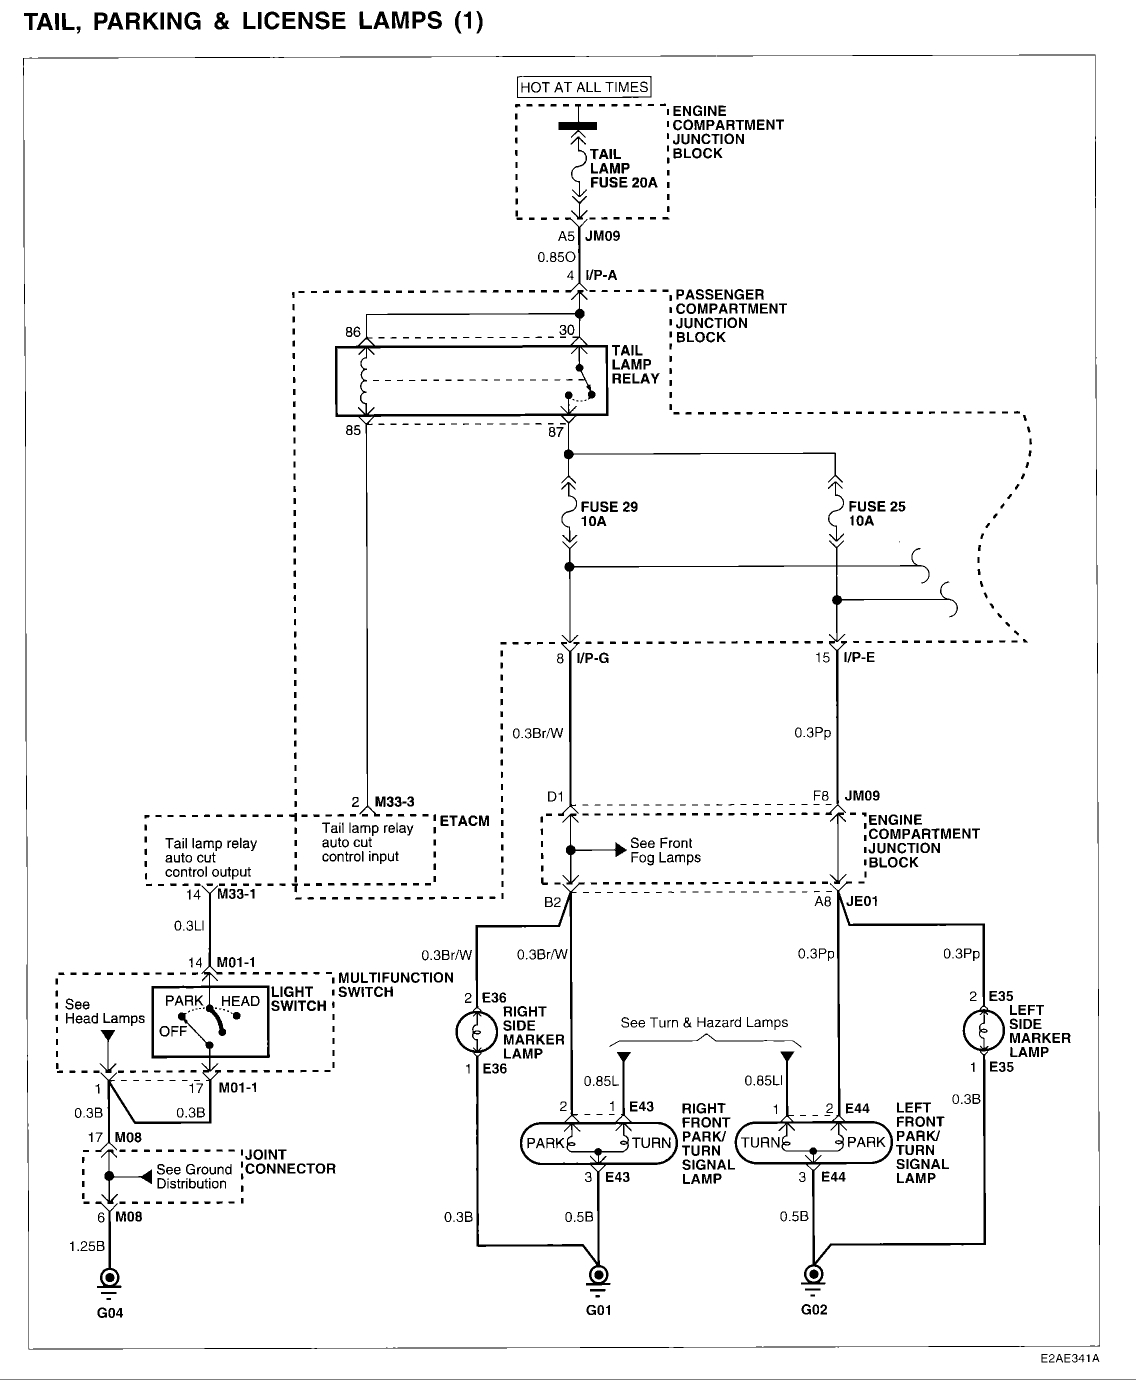 hight resolution of hyundai elantra radio wiring diagram 2009 hyundai sonata fuse box diagram inspirational sophisticated hyundai sonata